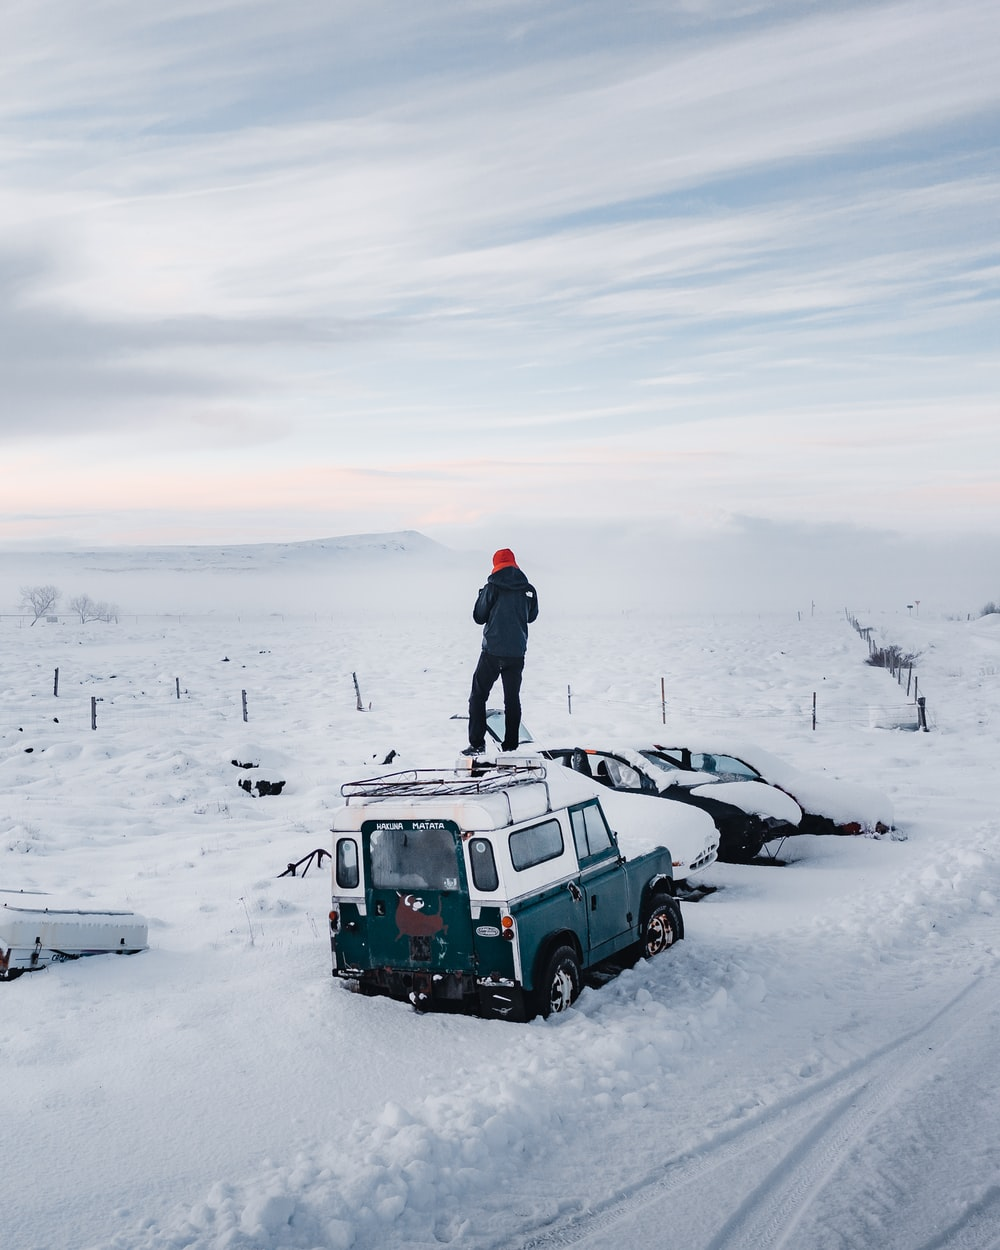 man in black jacket standing on green car on snow covered ground during daytime